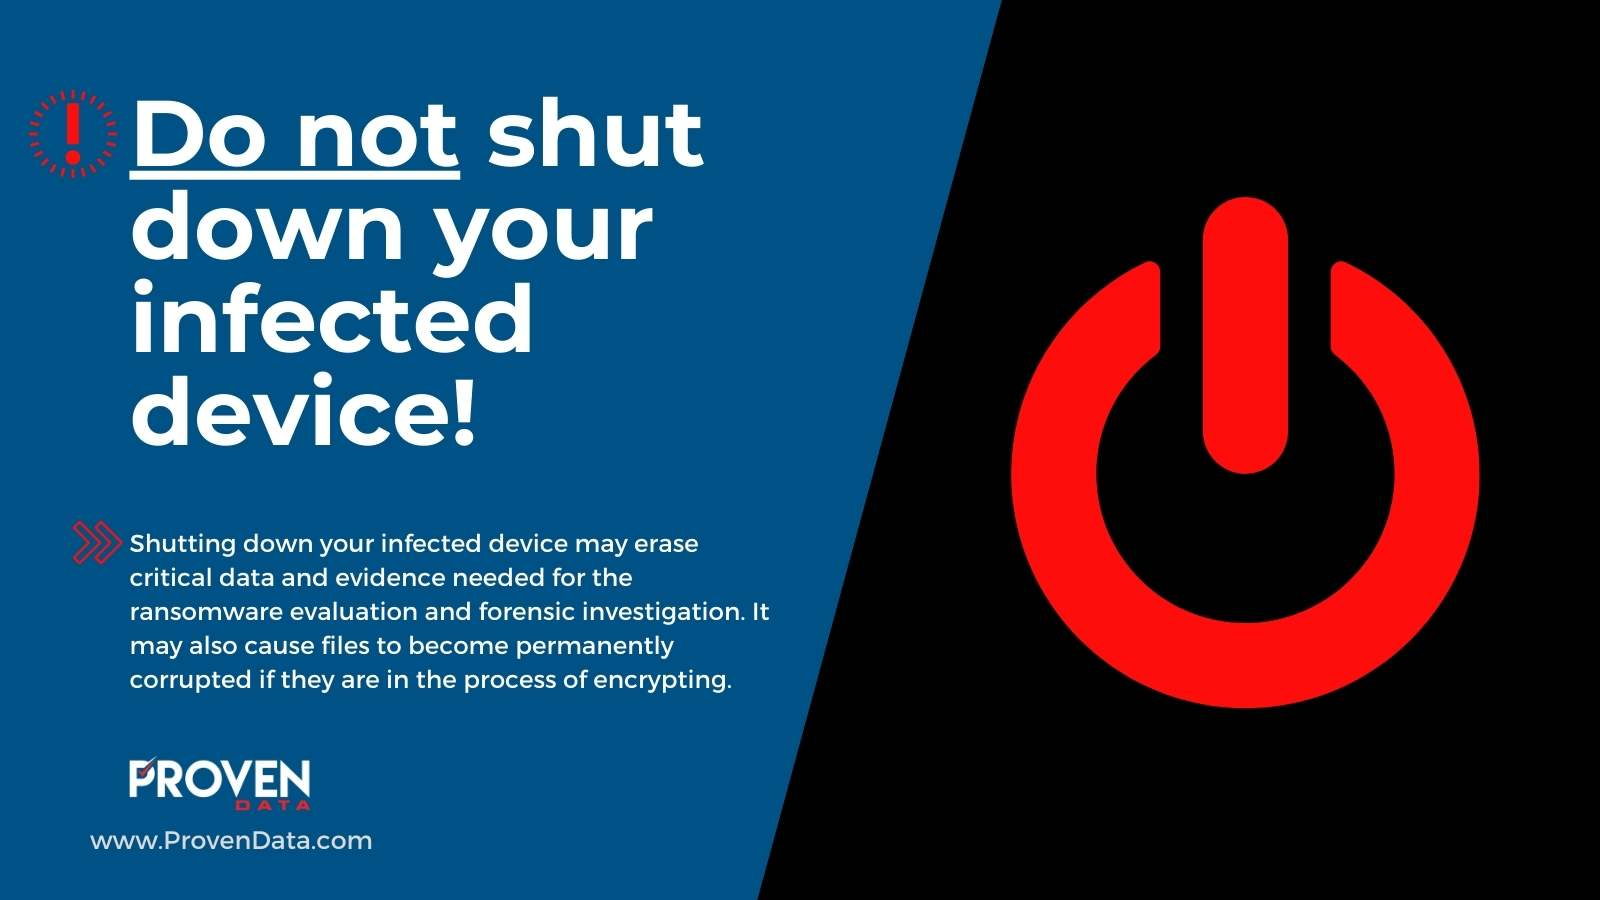 Do Not Shut Down Your Infected Device